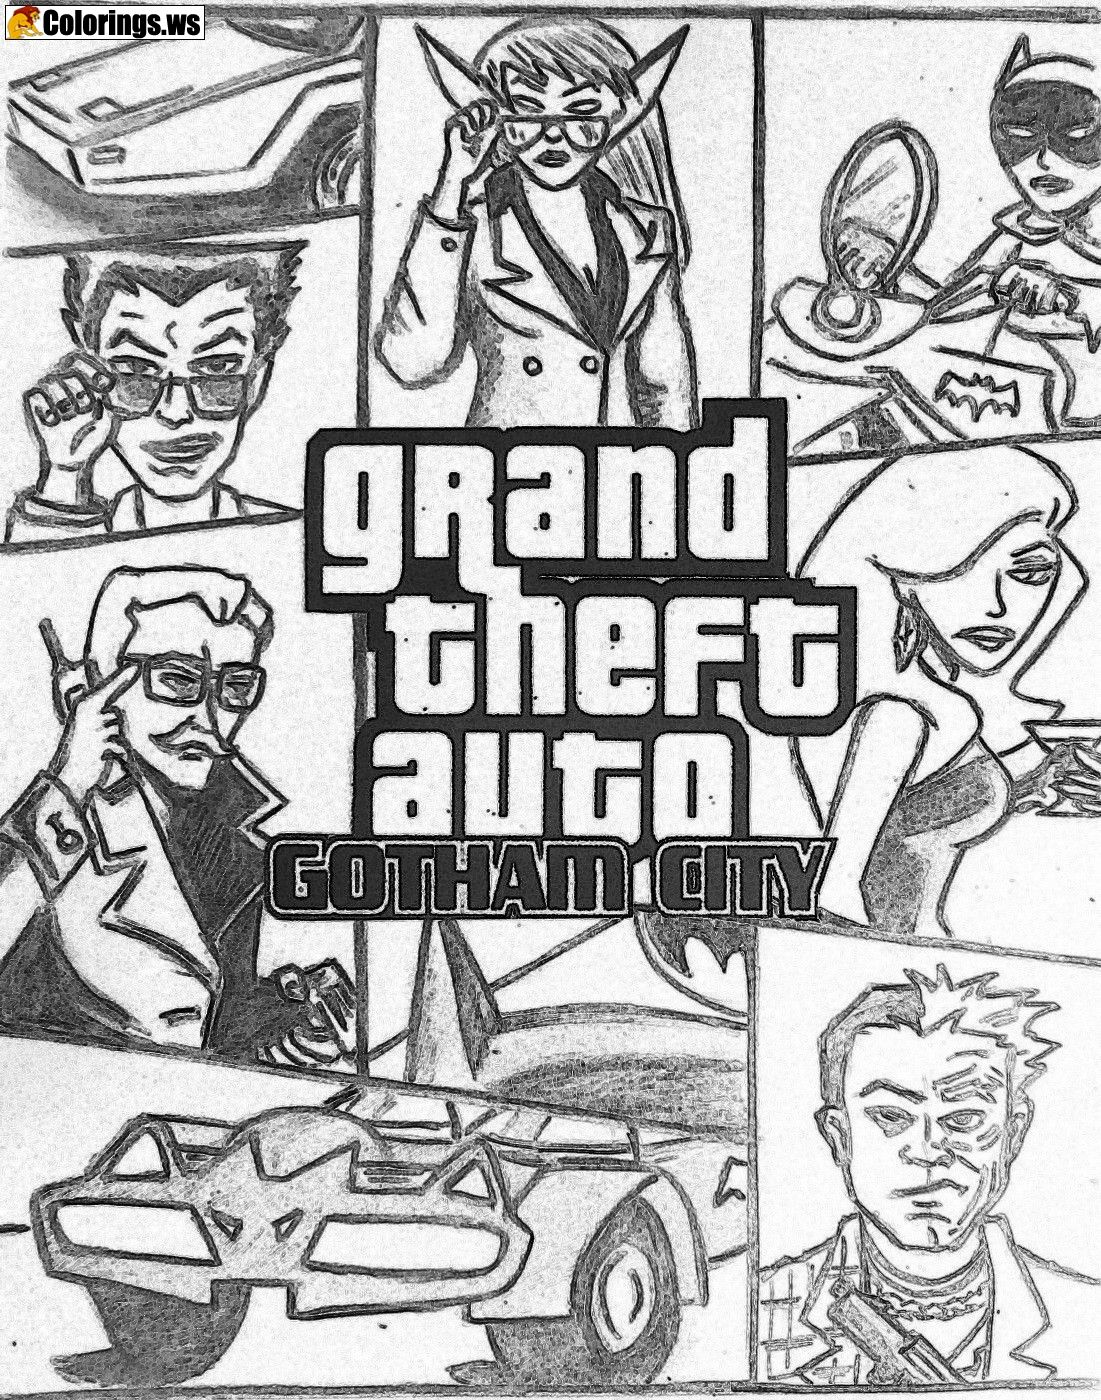 Gta 5 coloring pages gotham city gta 5 coloring pages rockstars open world hit gta 5 has sold more than 90 million copies worldwide